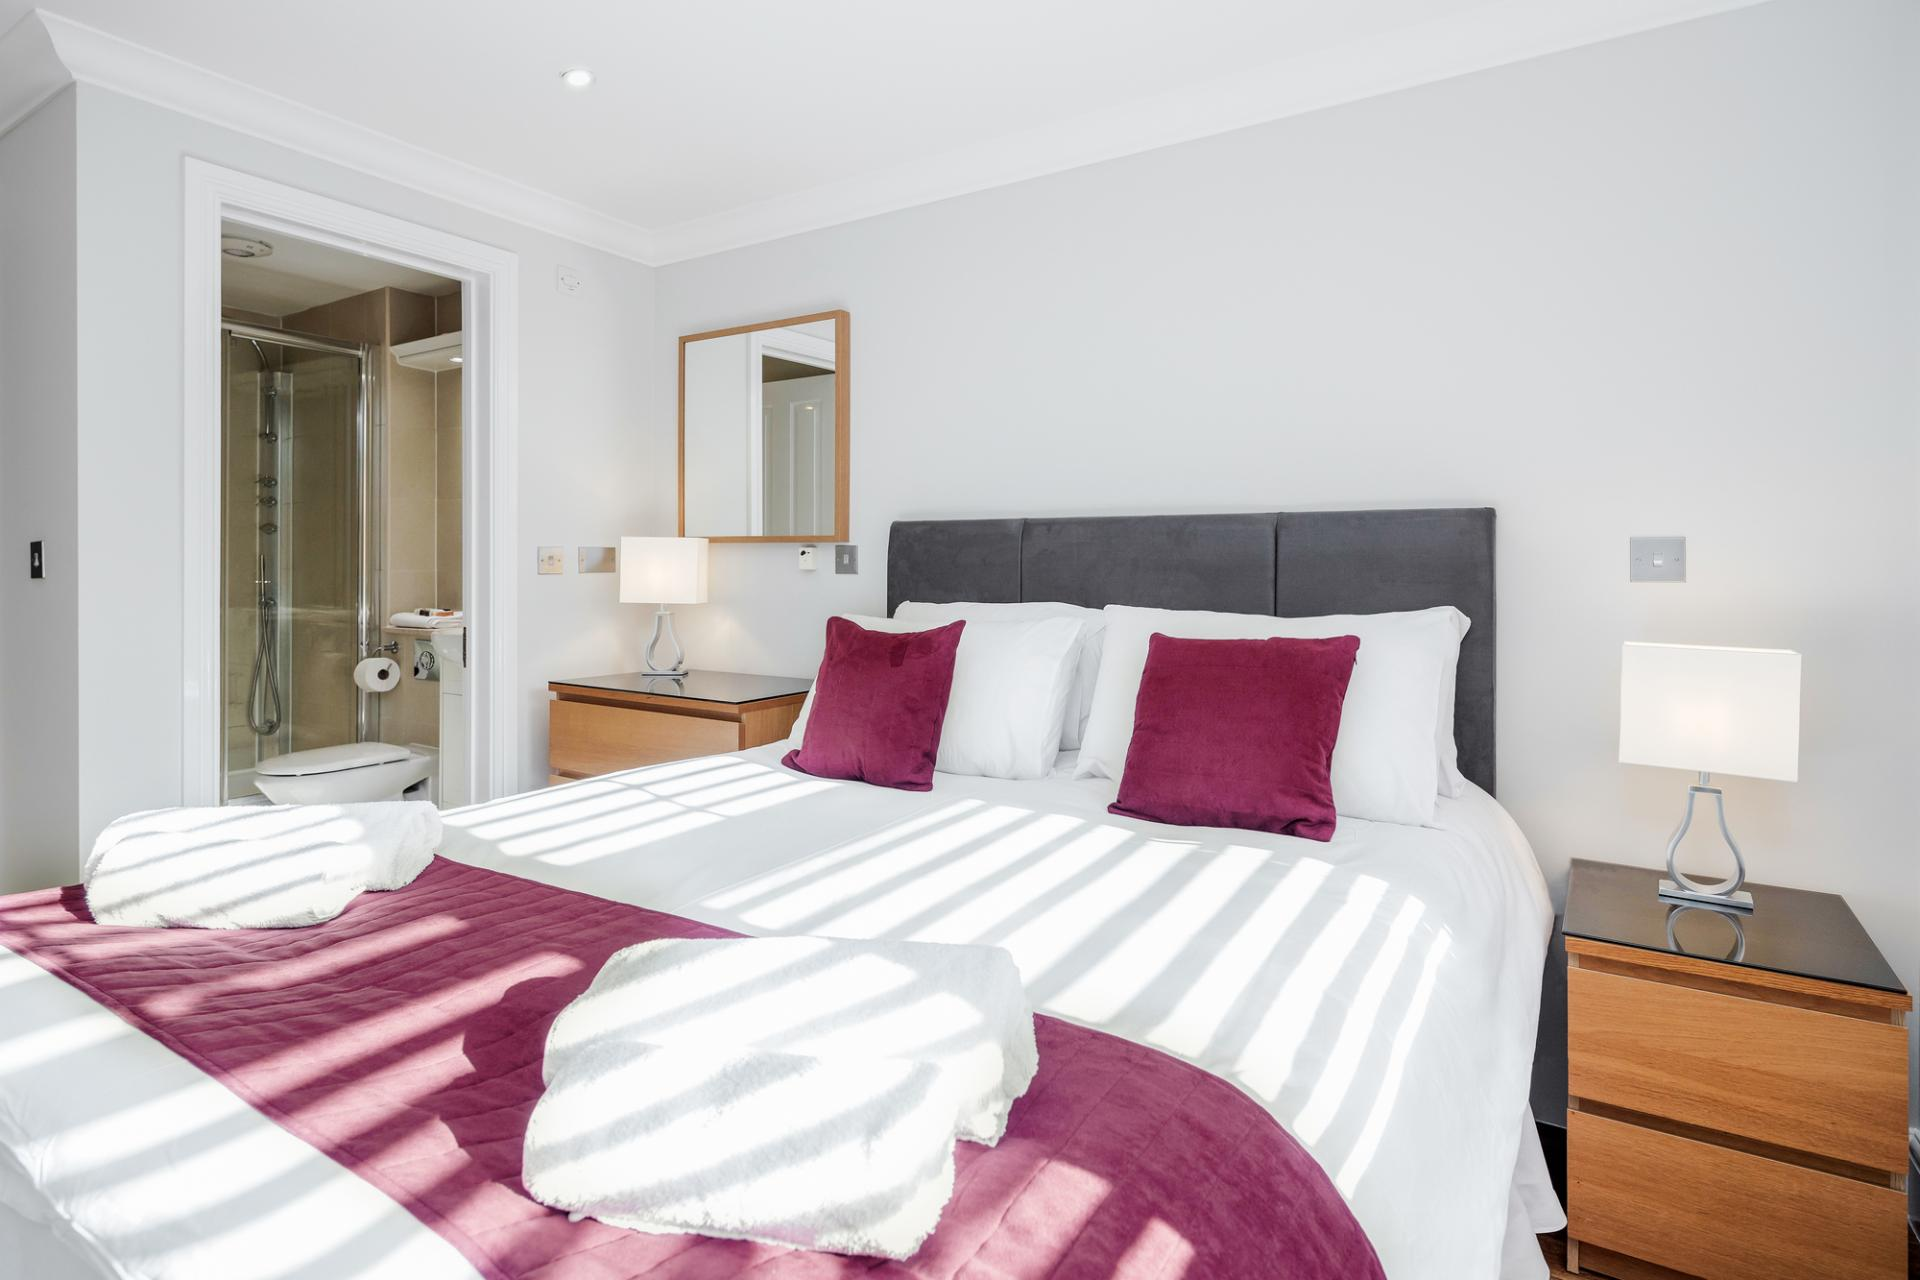 Bedroom at Little Orchard Place Apartments, Centre, Esher